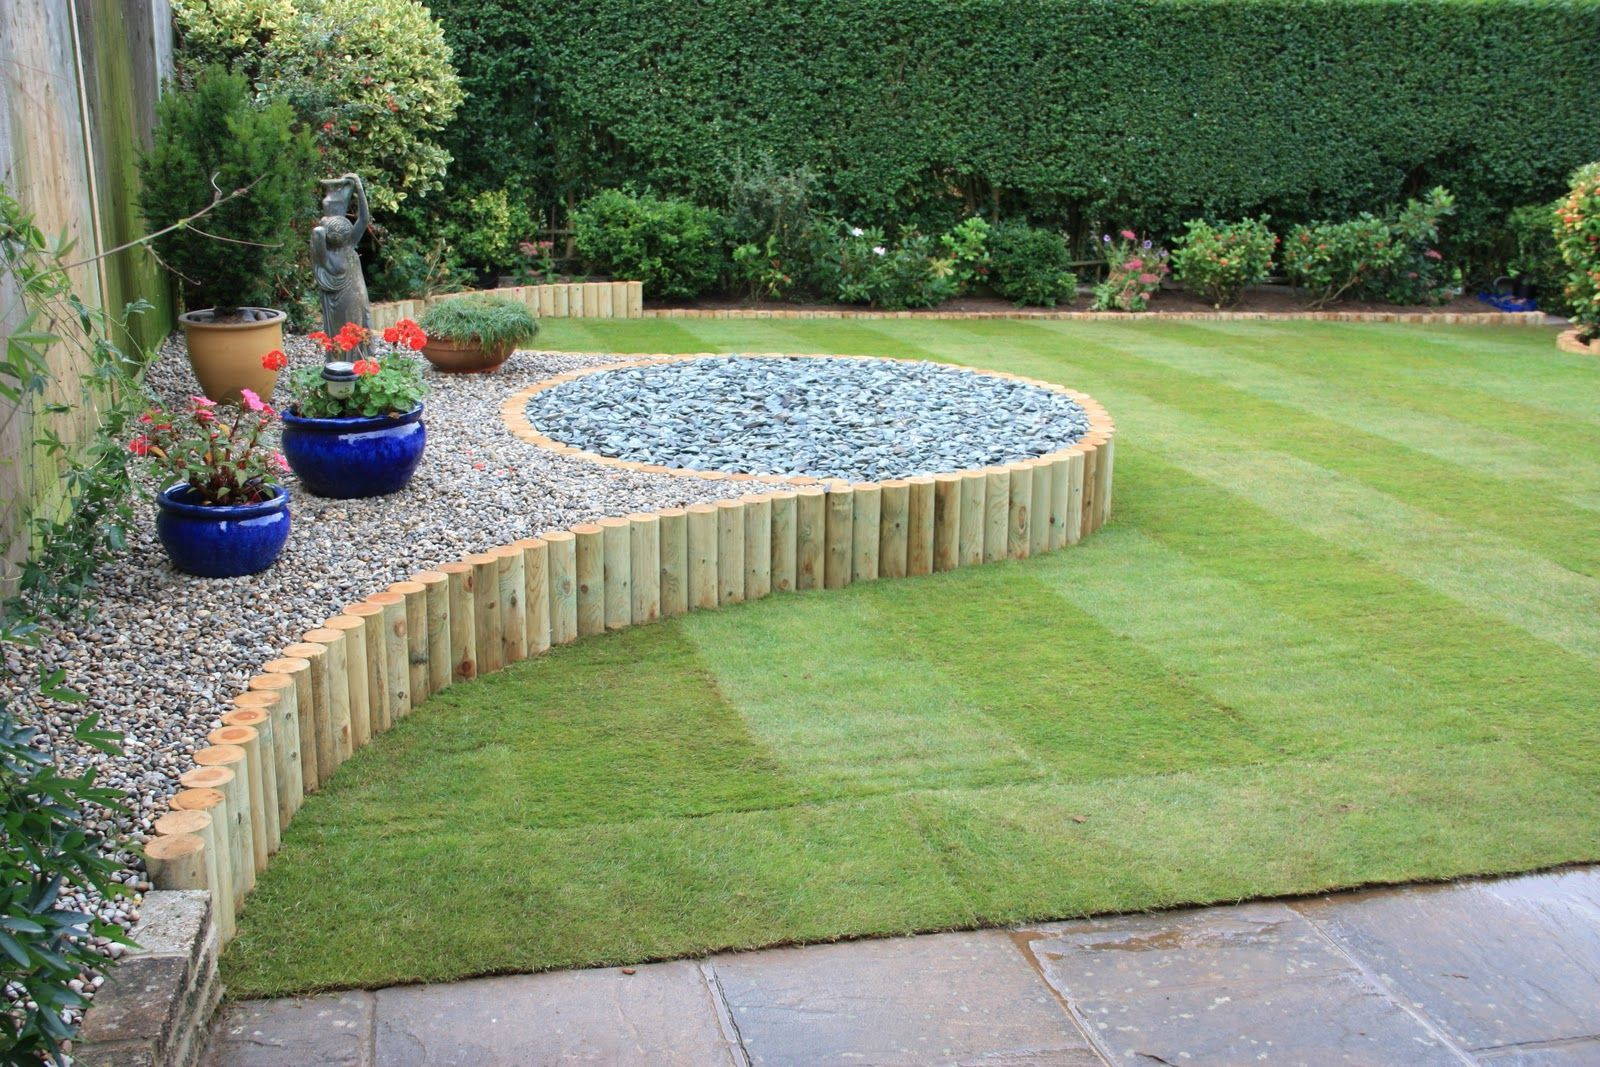 Garden Landscape cool simply landscaping design for trend 2015. top residential